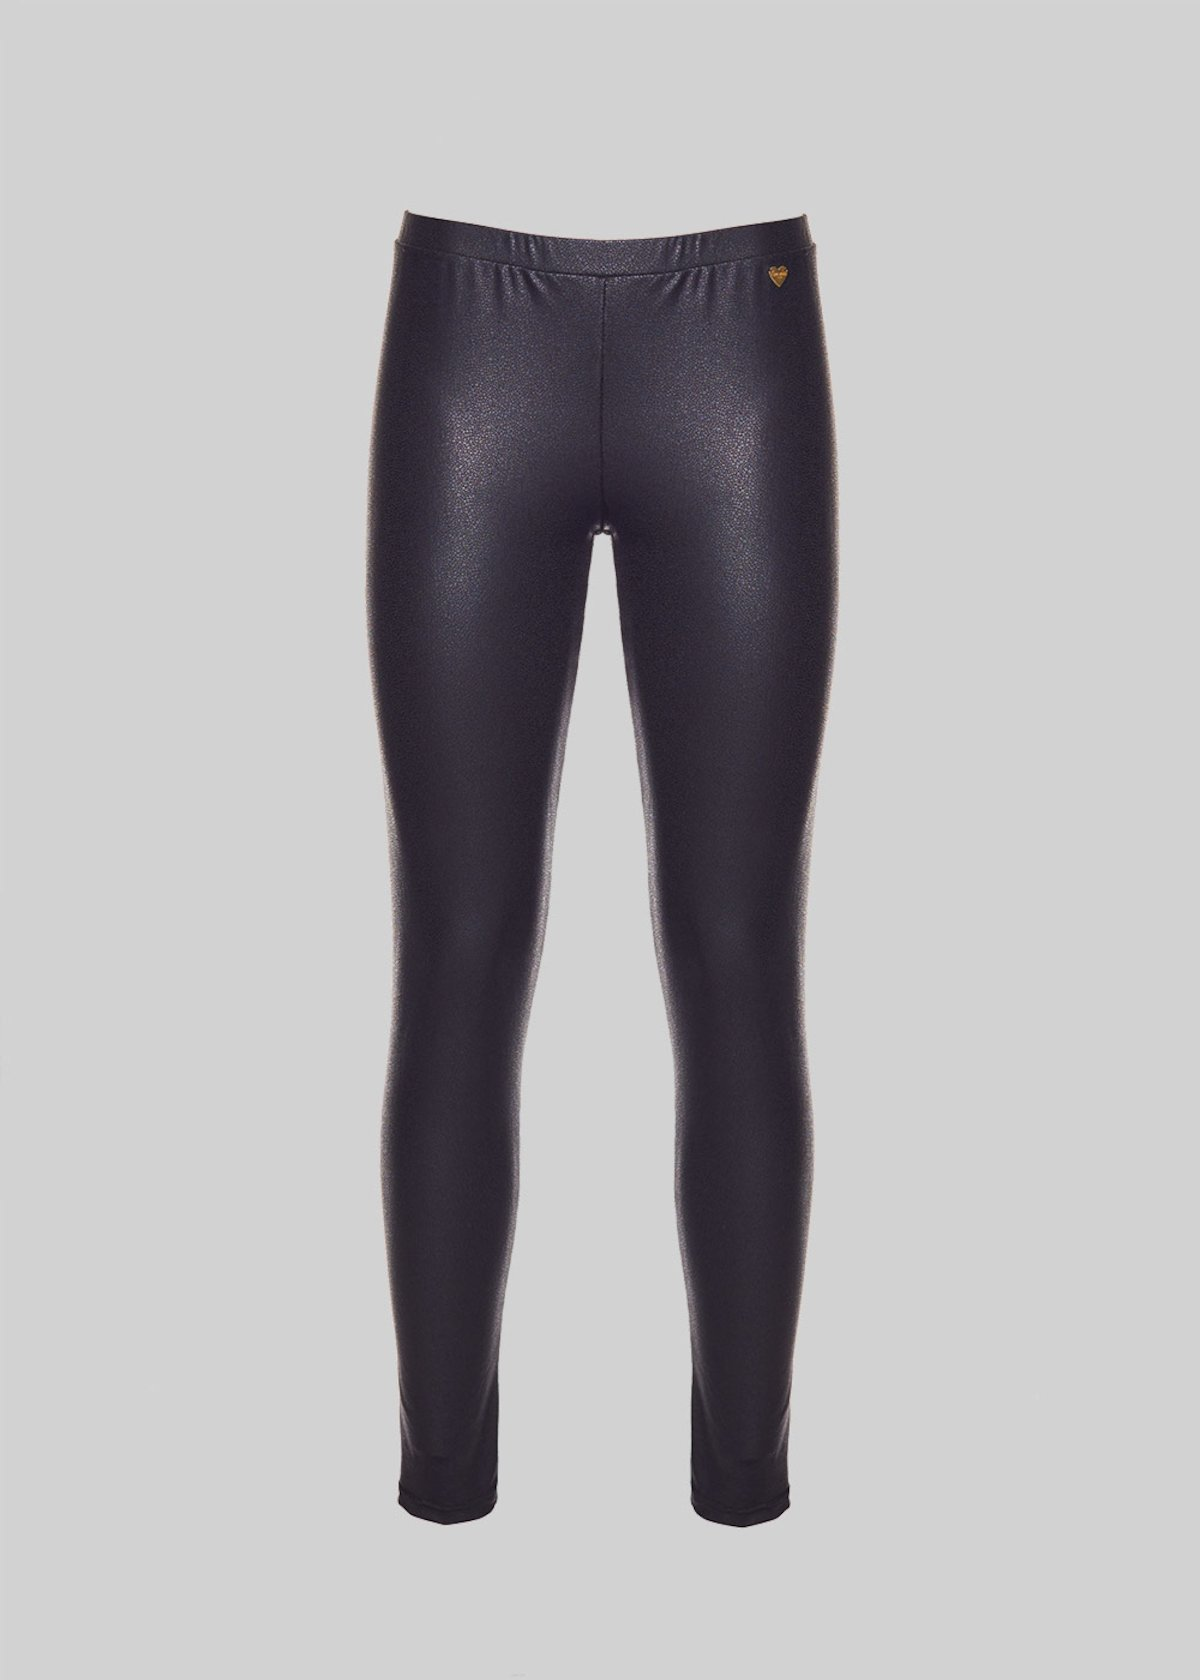 Leggings Larry in crincle fabric - Black